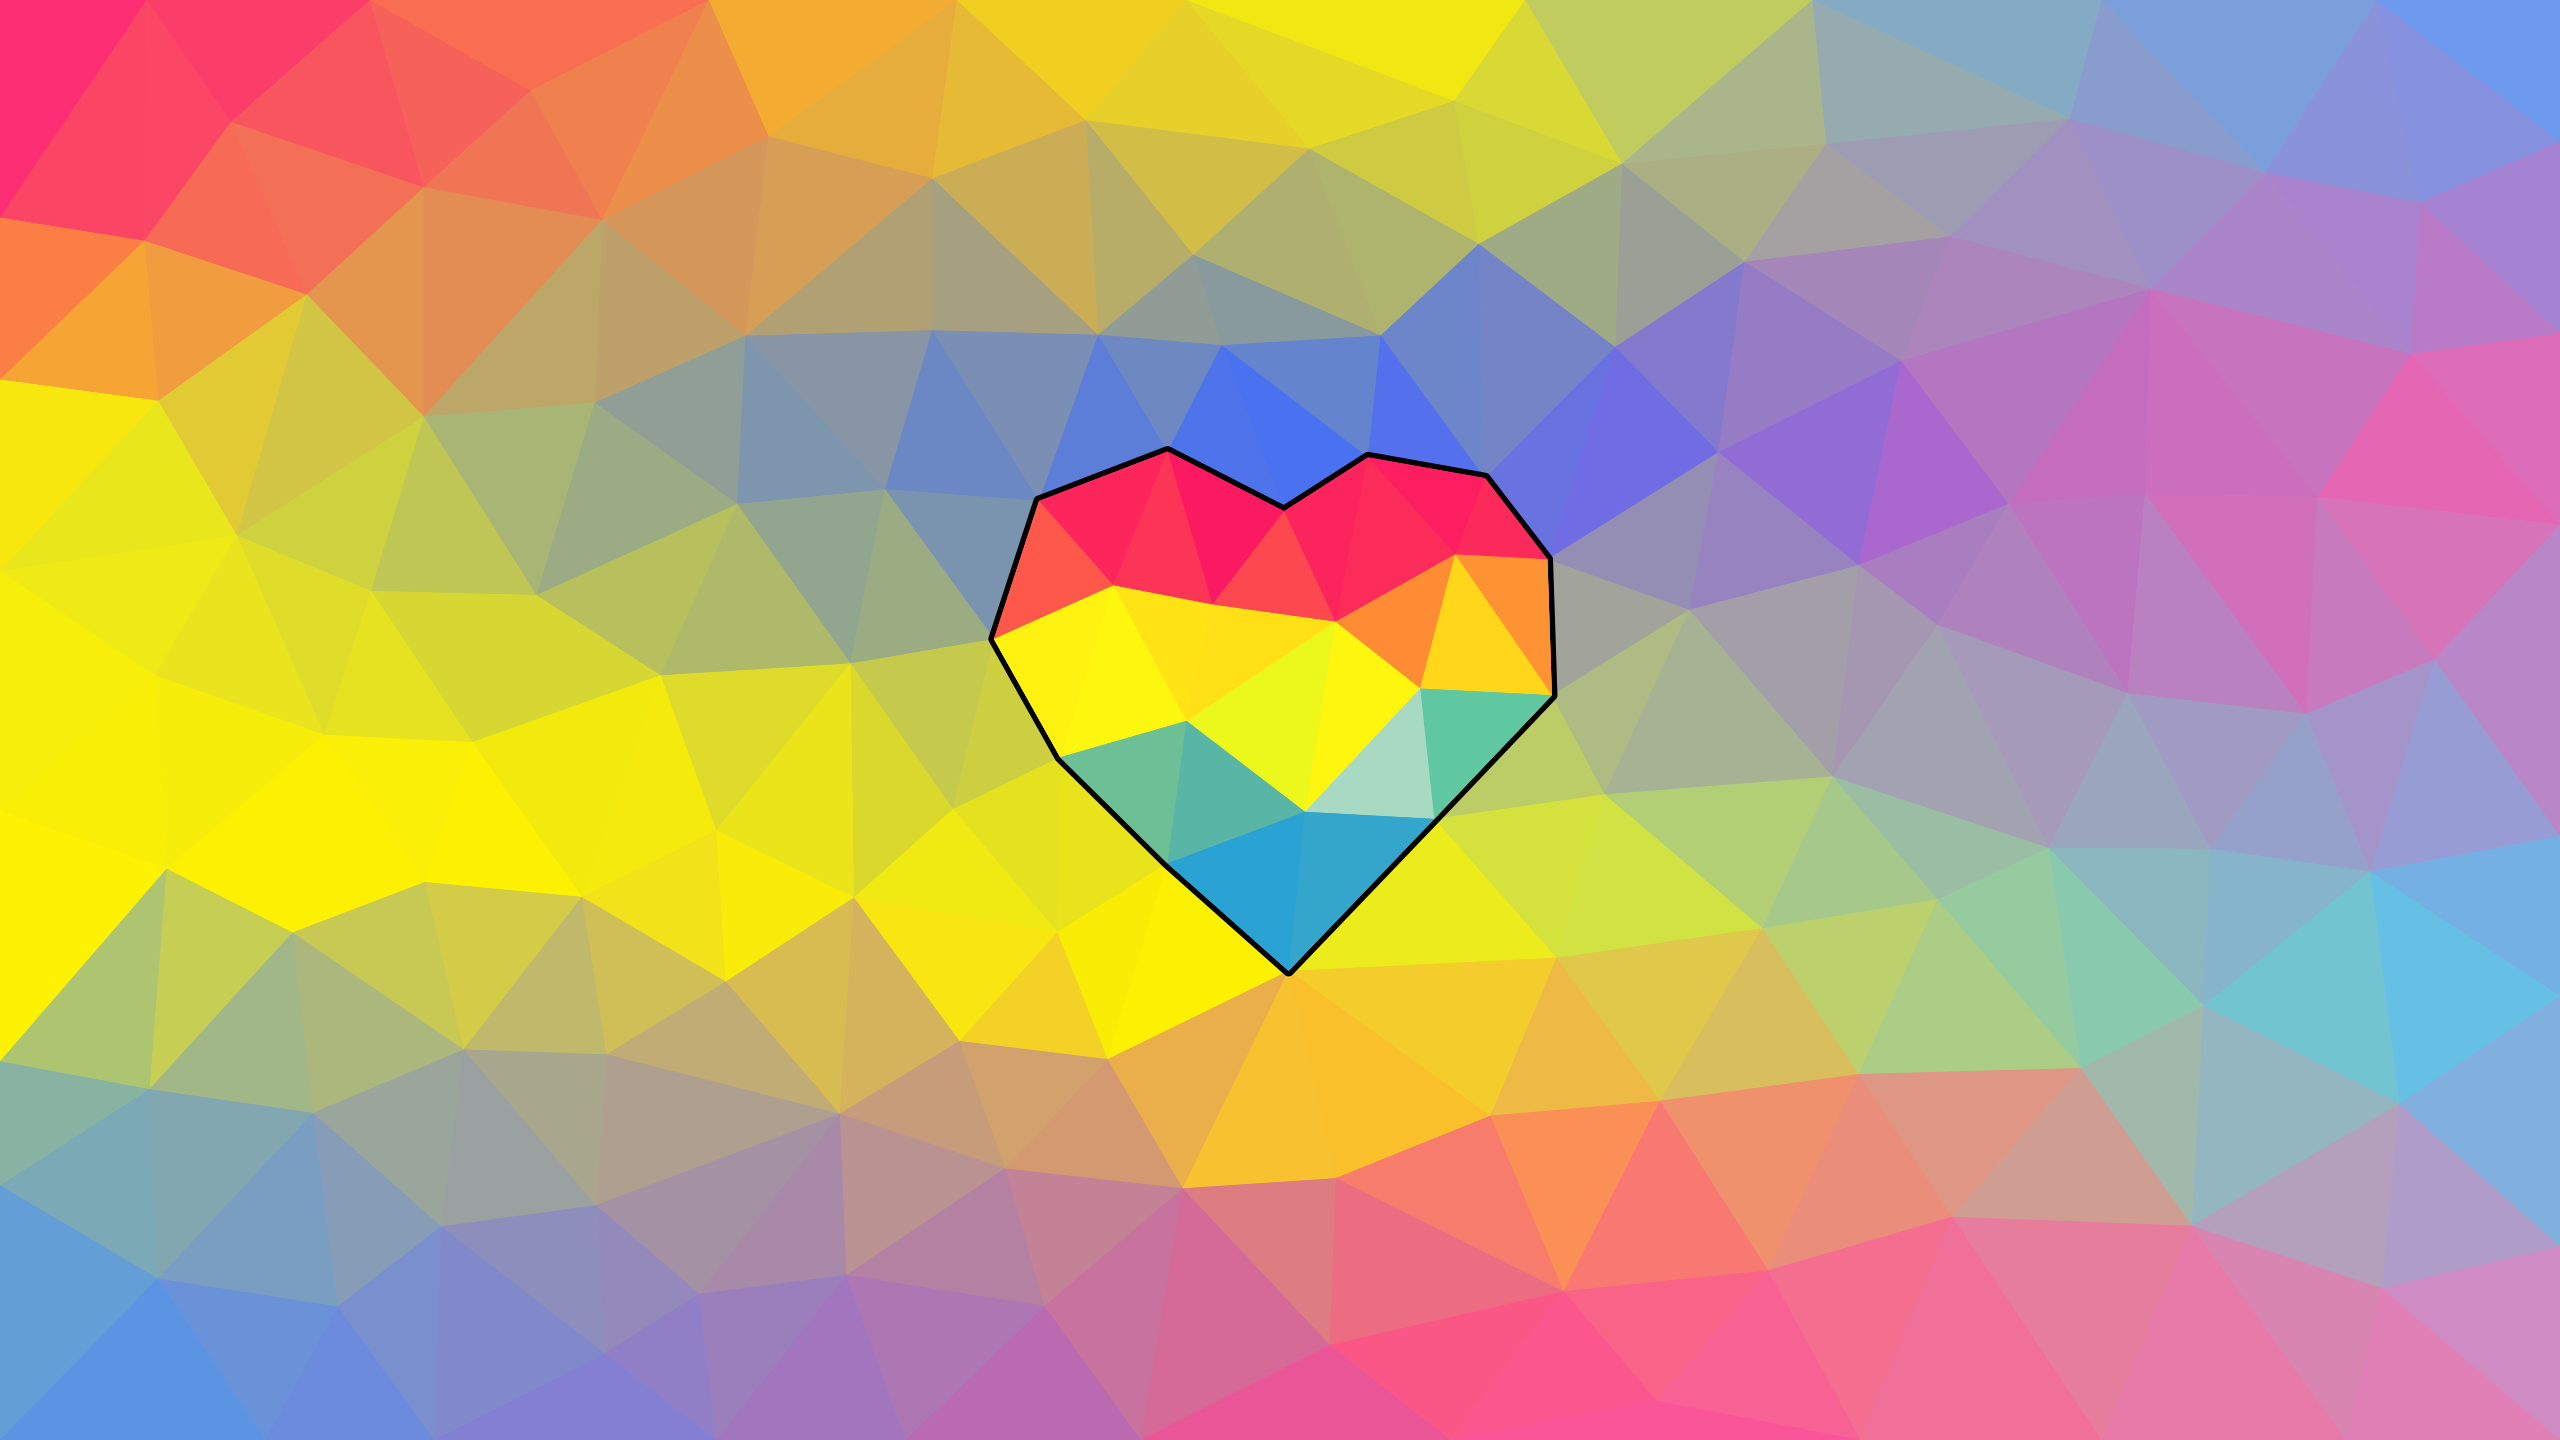 Pansexual Wallpaper Hd 2560x1440 Wallpaper Teahub Io